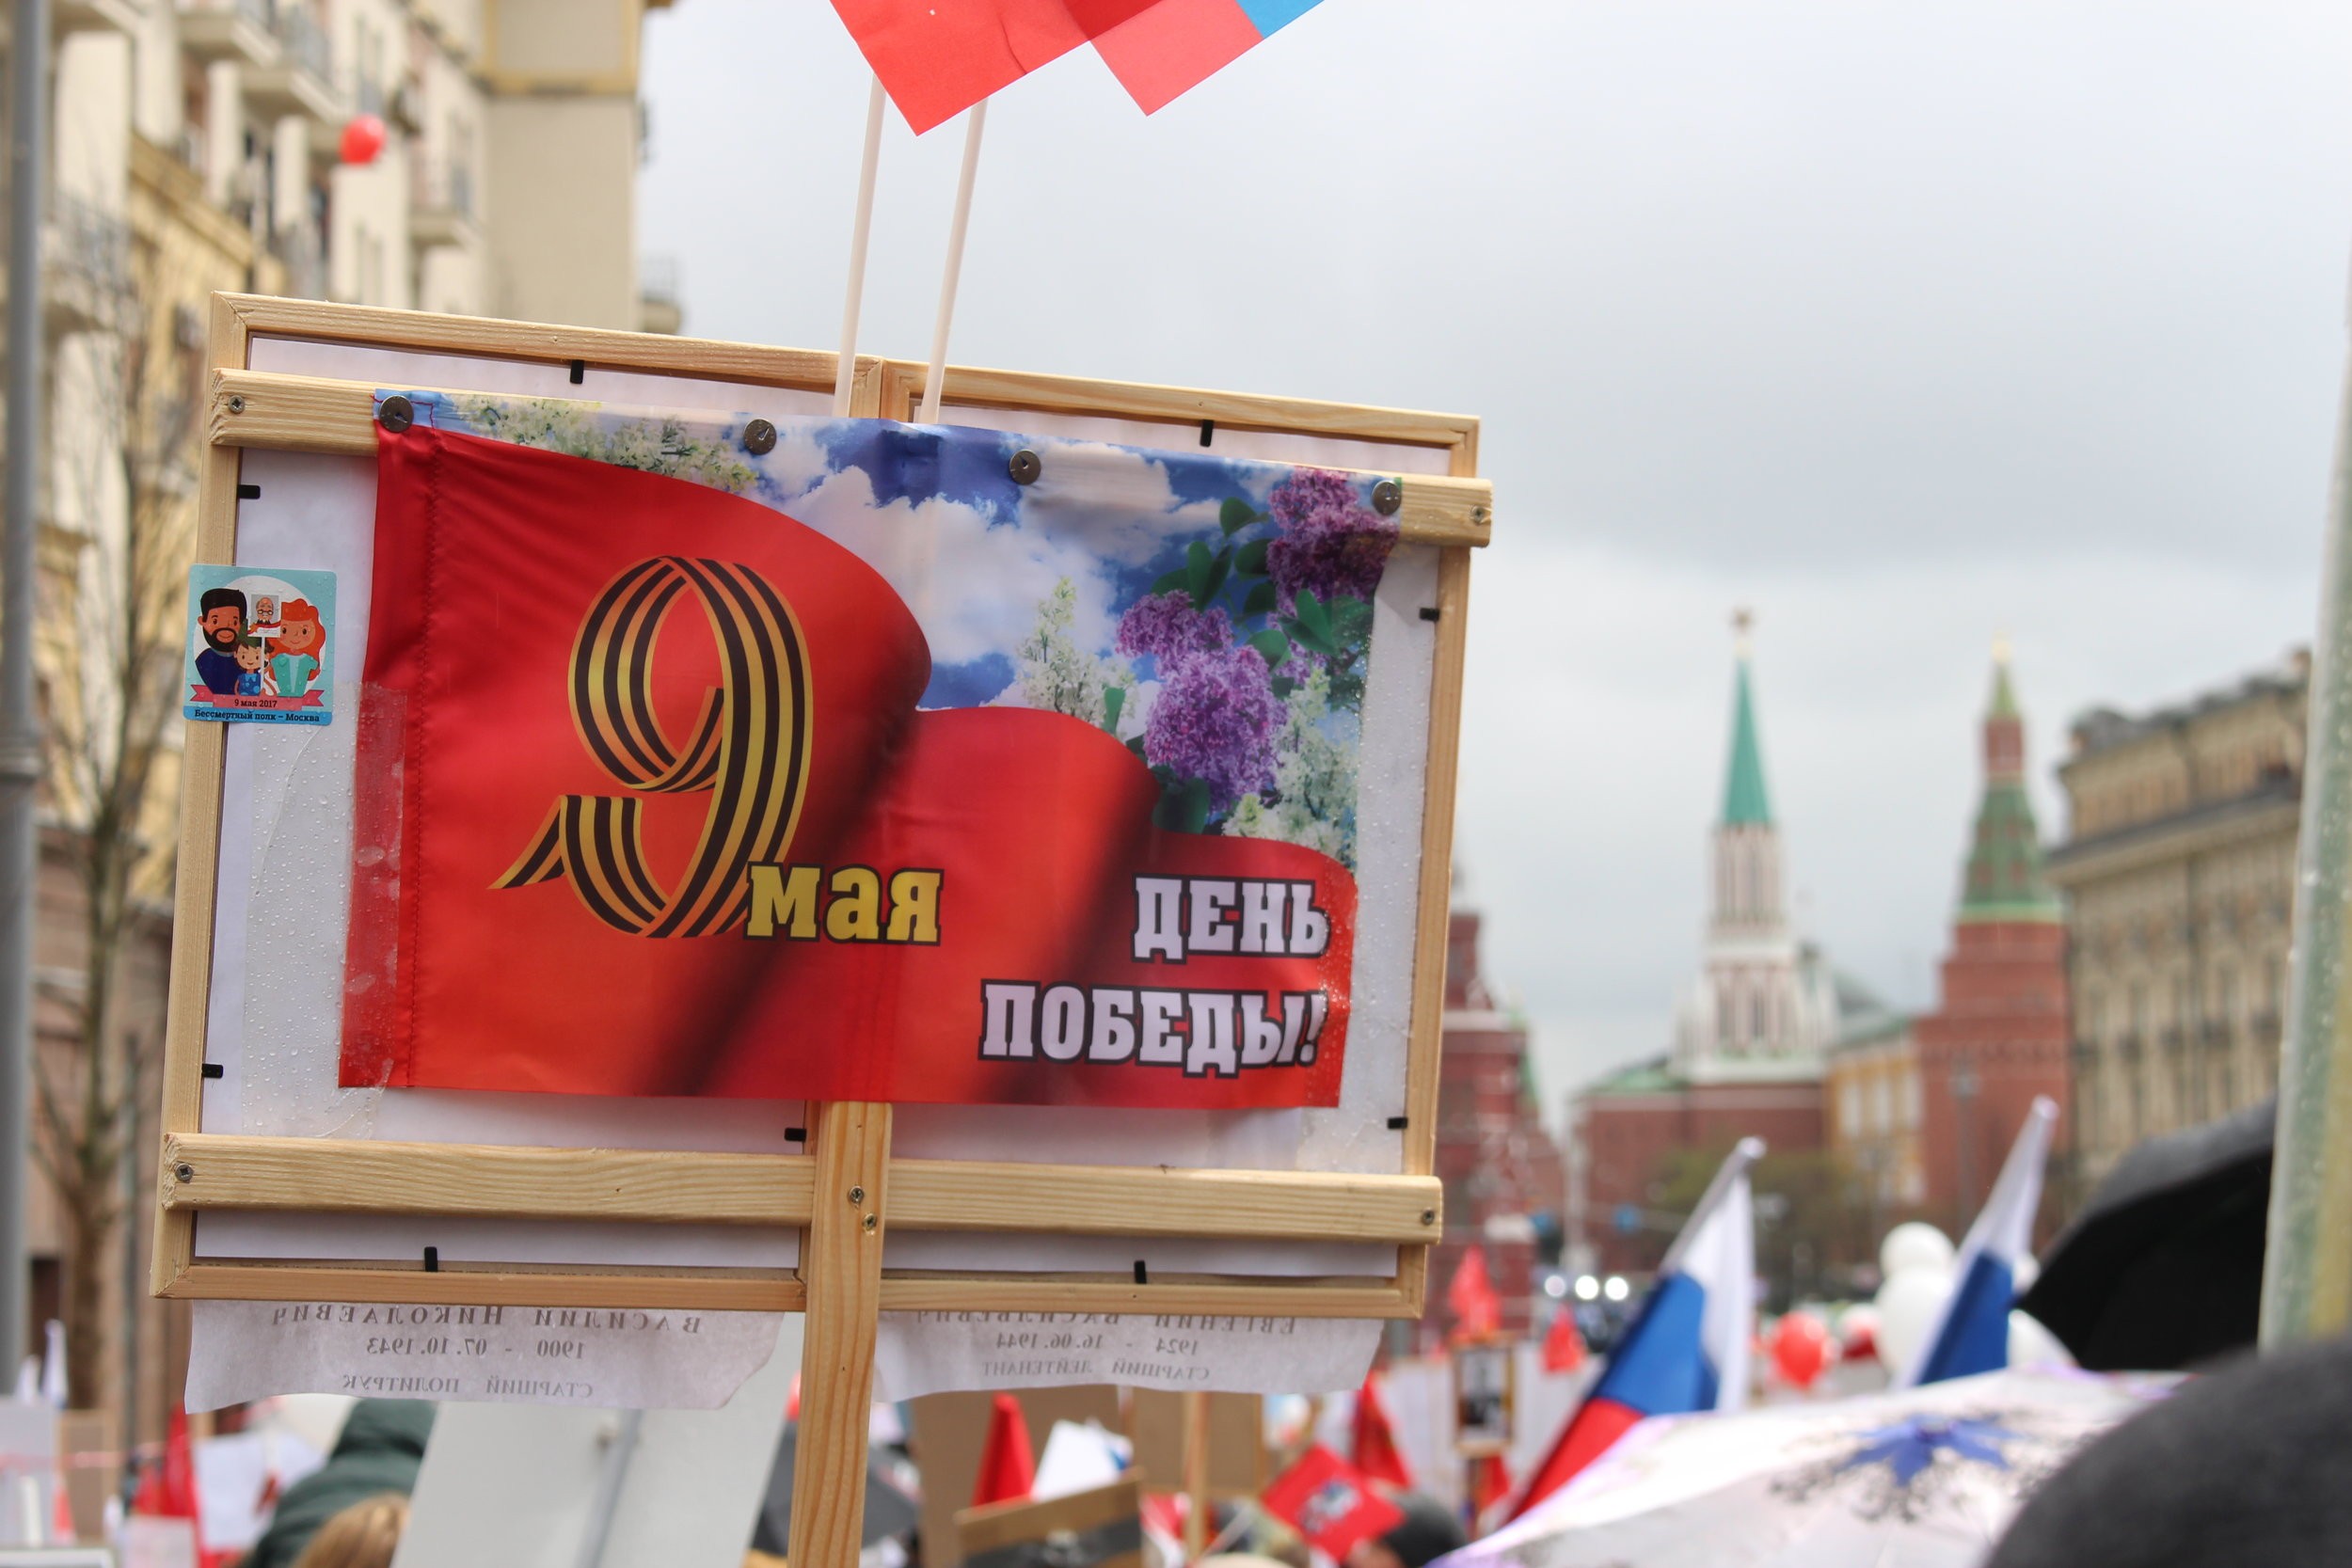 During the 'Immortal Regiment' march, heading for Red Square